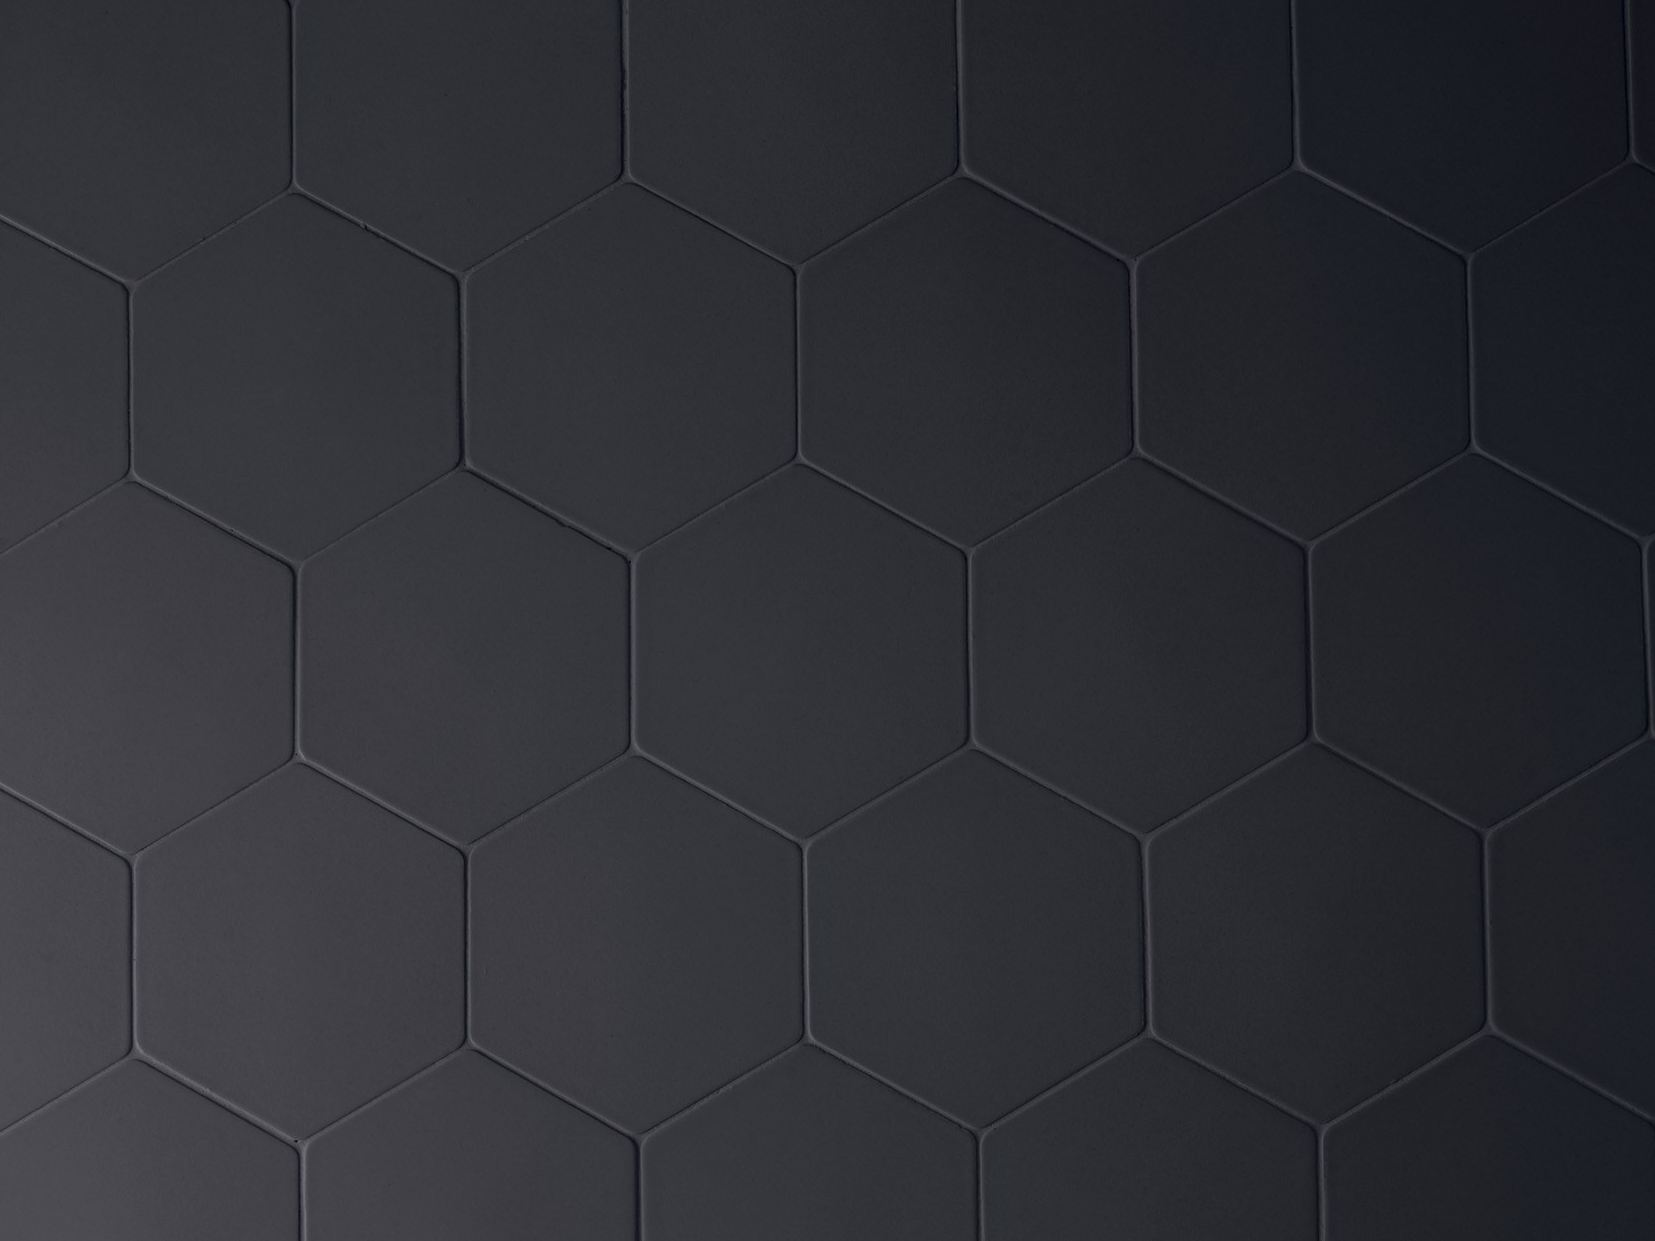 Rev tement mural en gr s c rame phenomenon hexagon nero by mutina design tokujin yoshioka - Textuur carrelage noir ...